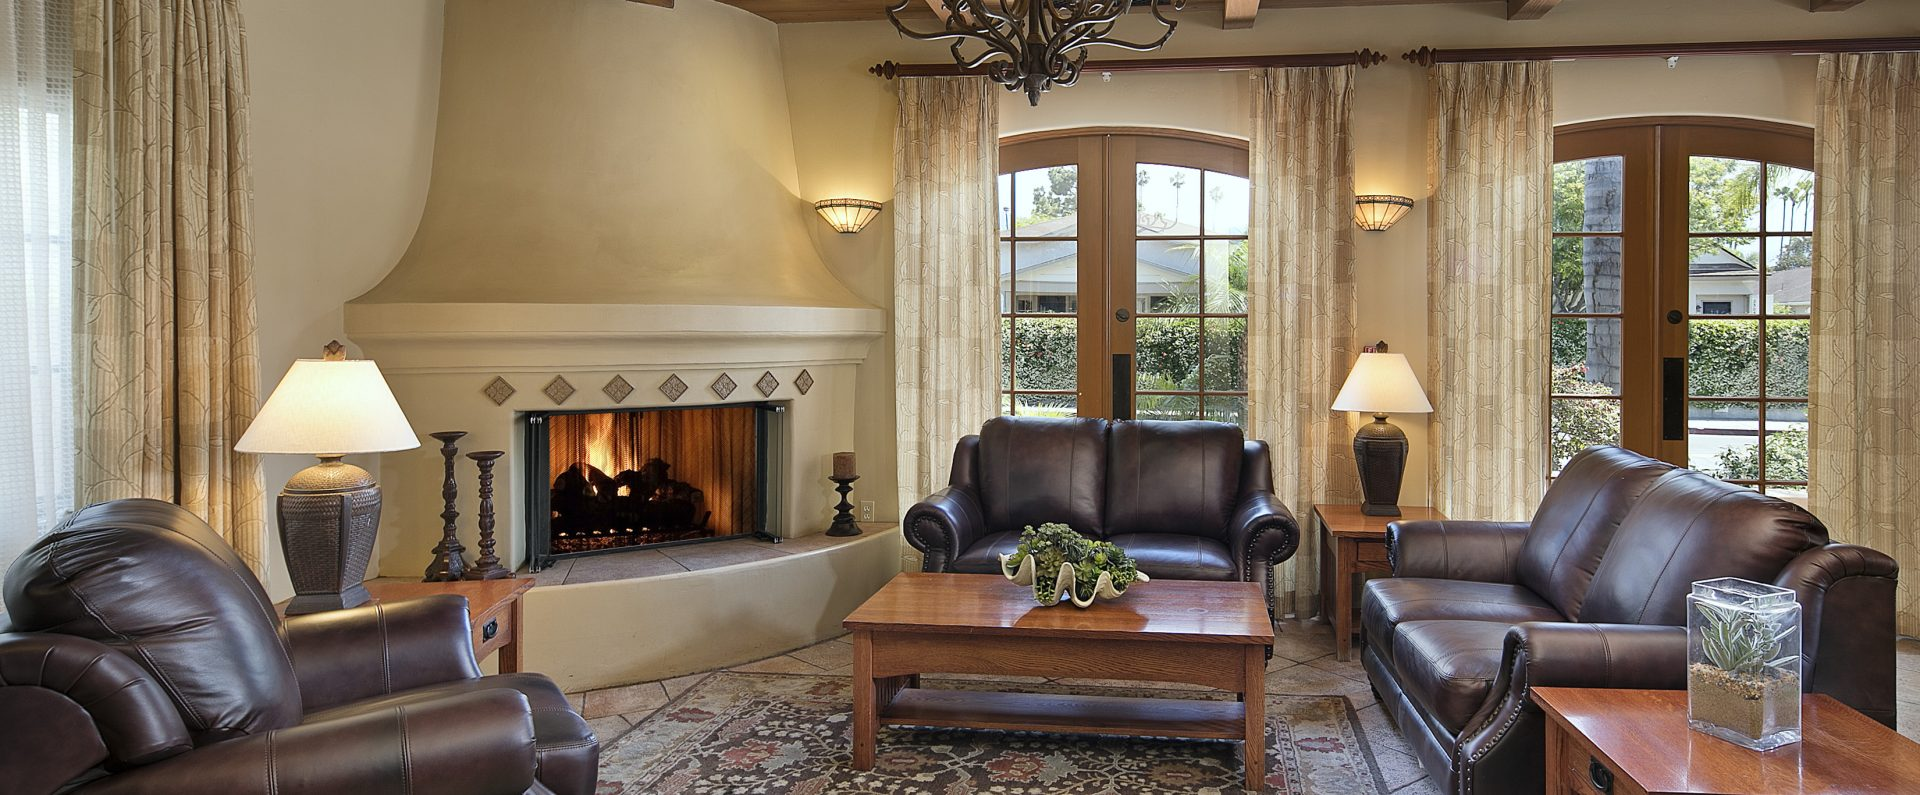 Room with cozy fireplace at Brisas del Mar, Inn at the Beach